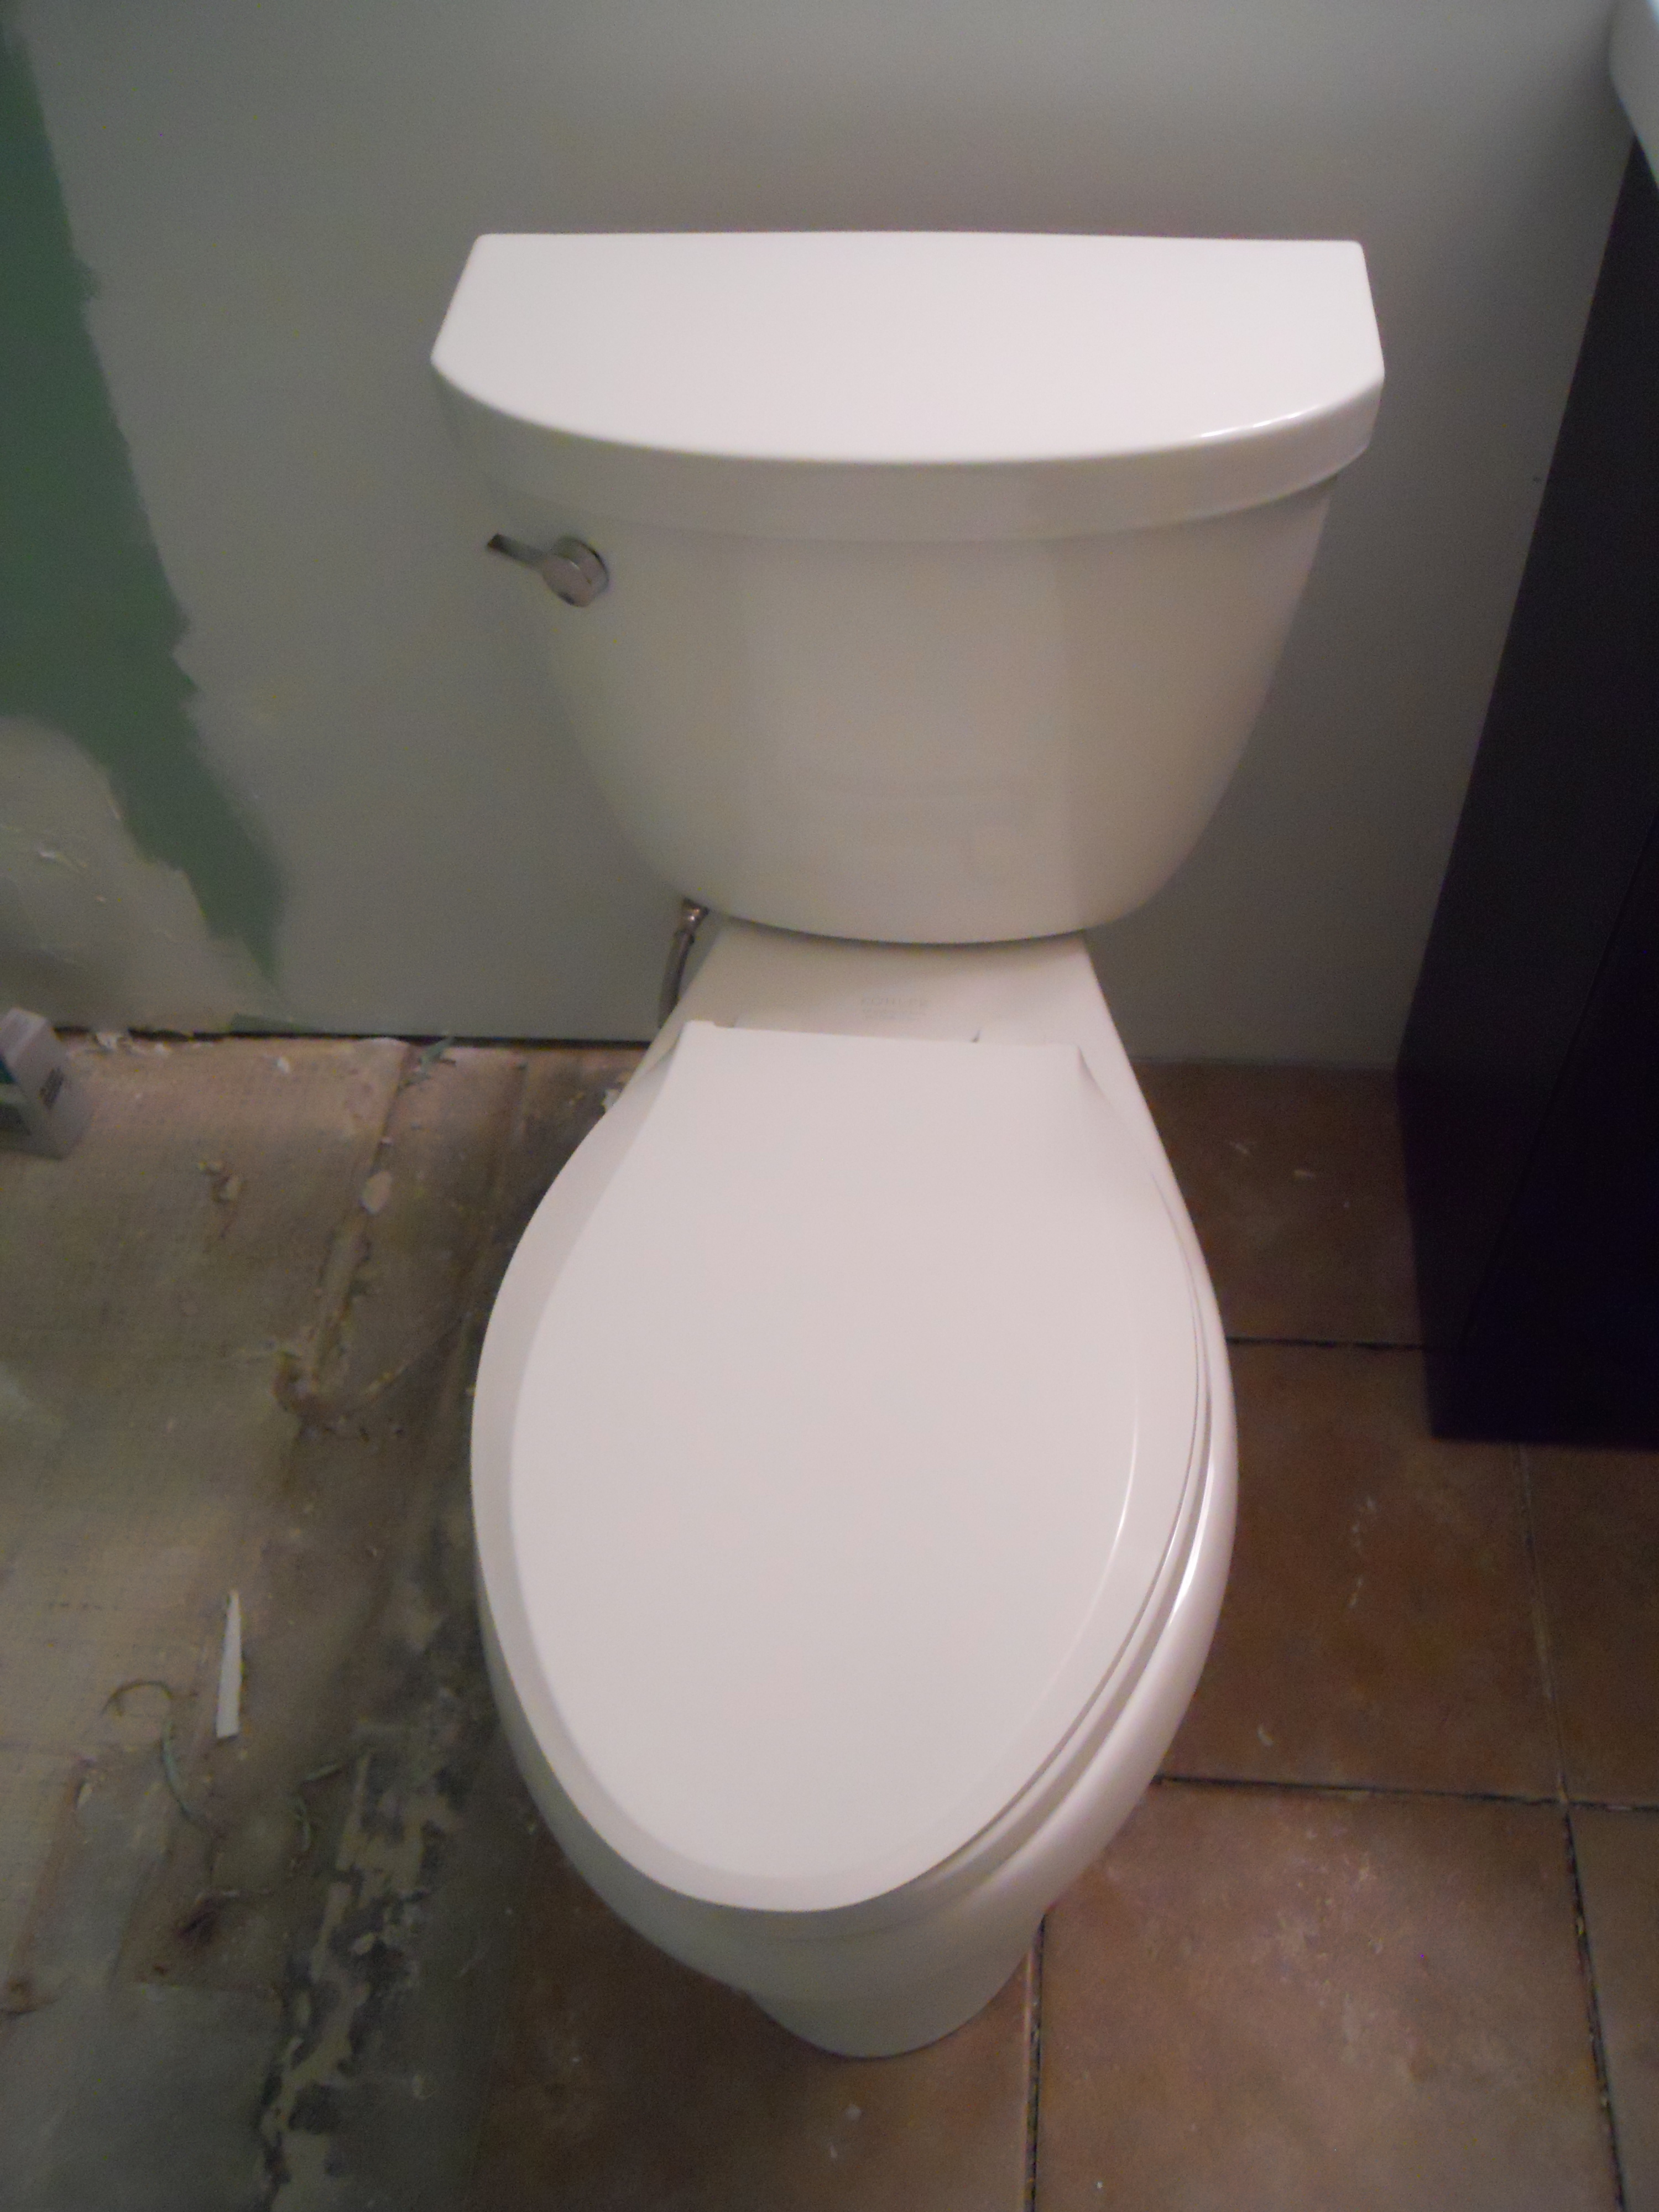 Installing a Toilet; Home Improvement